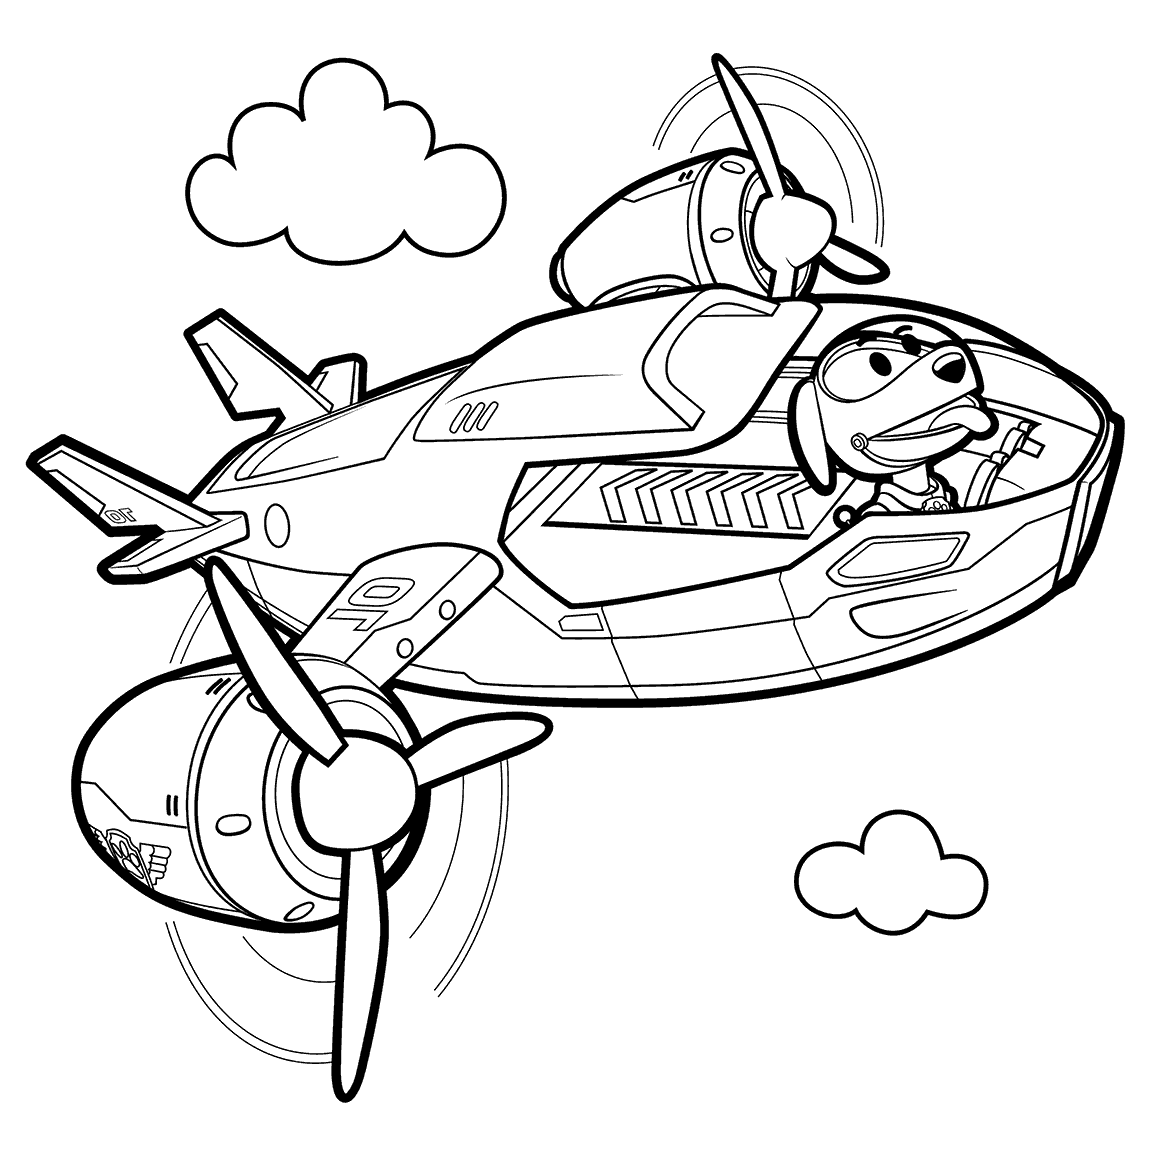 1160x1160 Robo Dog R Patroller Coloring Pages